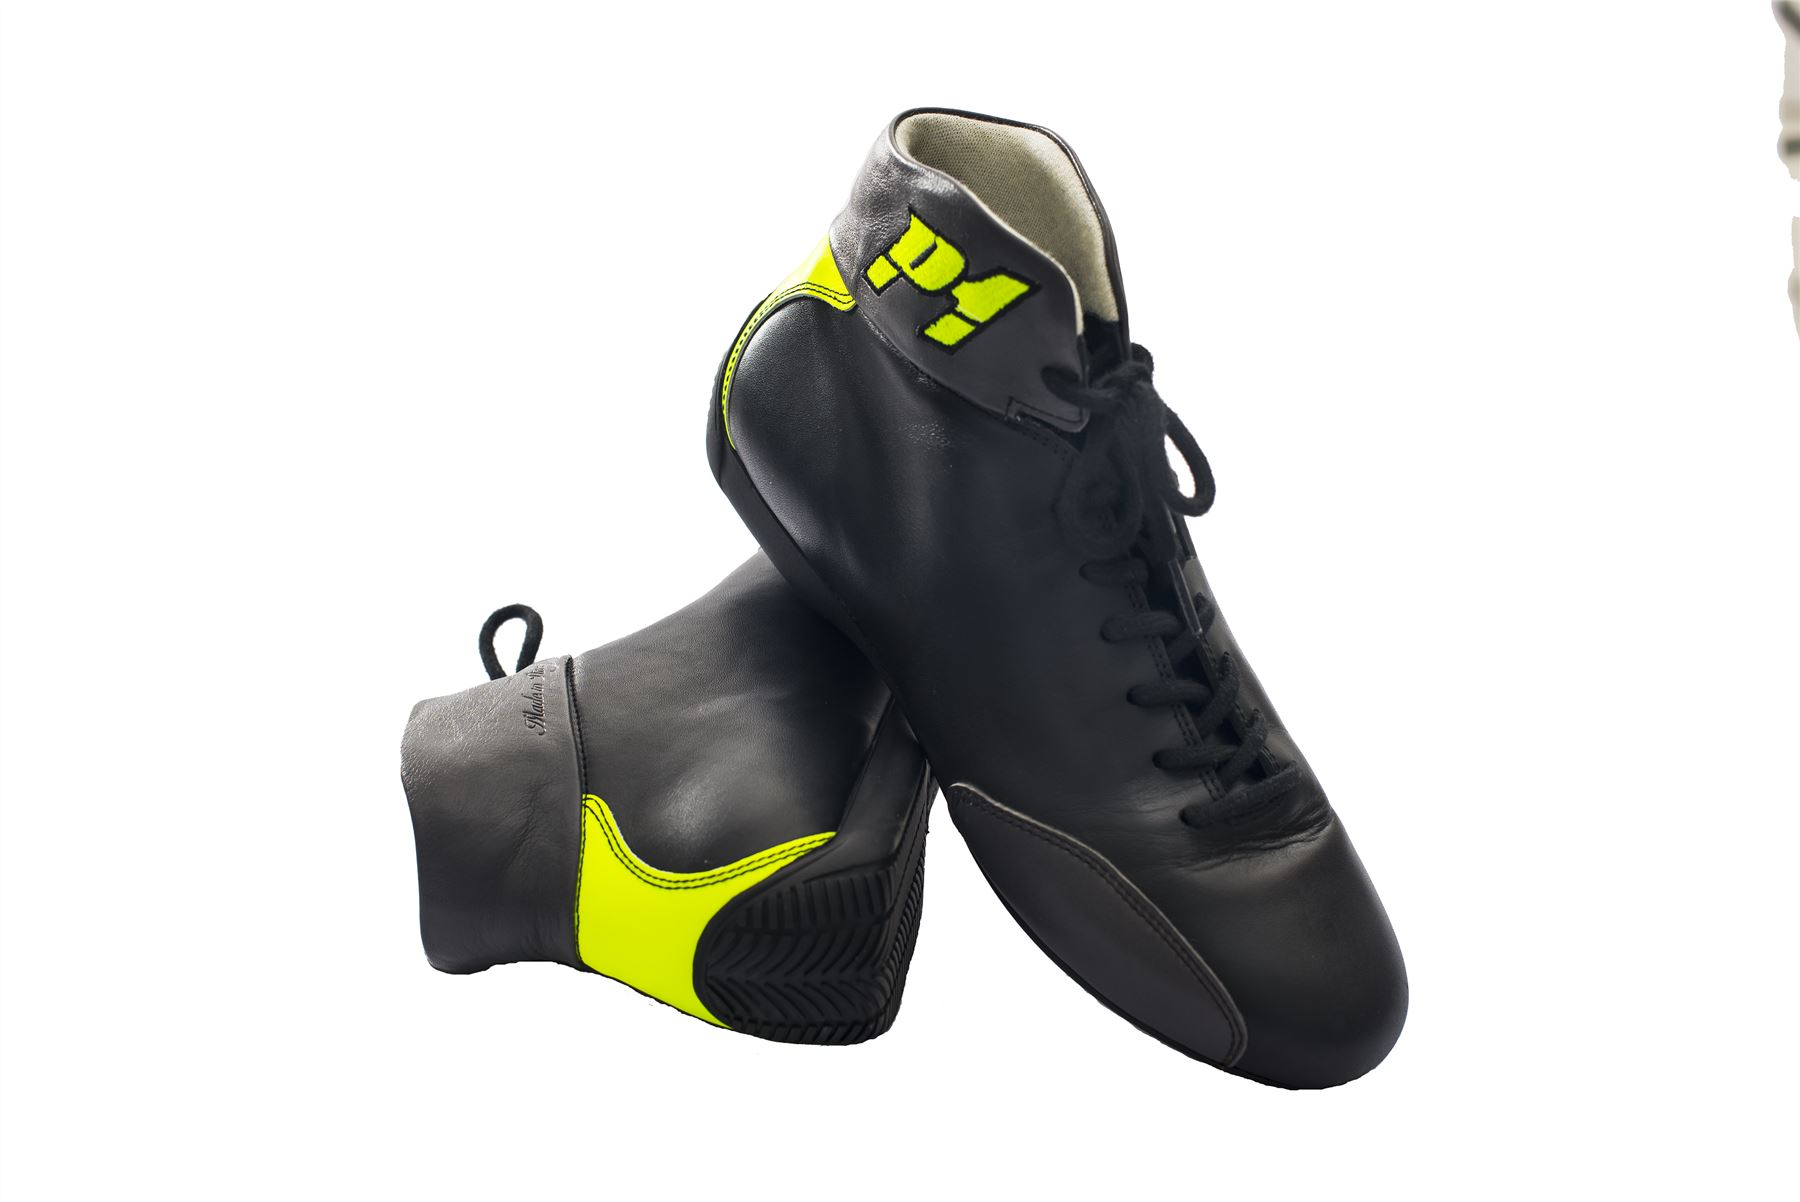 Indexbild 8 - P1 Racewear Monza FIA Approved Soft Leather Race, Rally Boots Black/Fluro